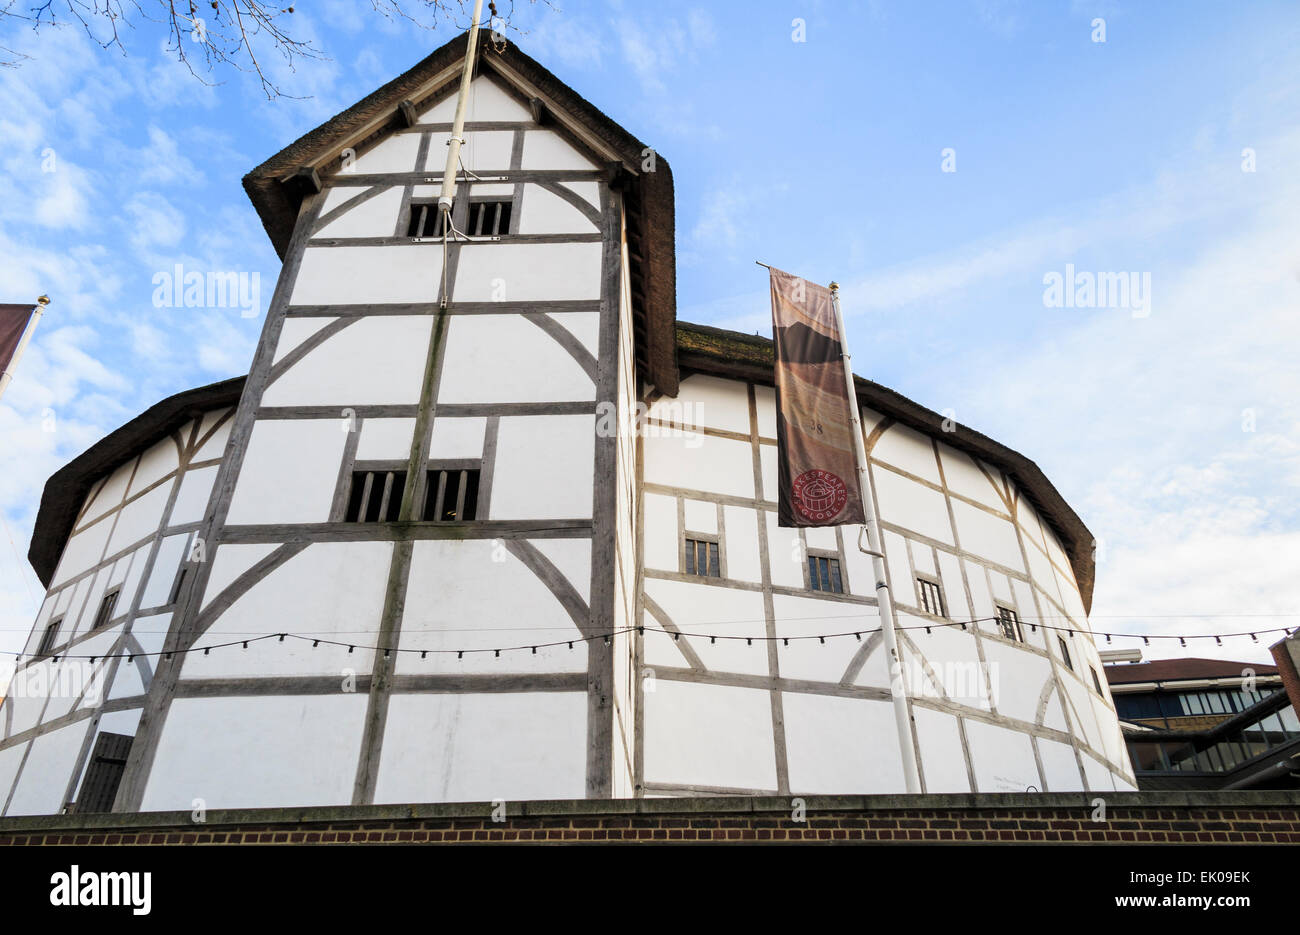 The Globe Theatre, associated with William Shakespeare, Bankside on the south bank of the Embankment, London SE1 - Stock Image